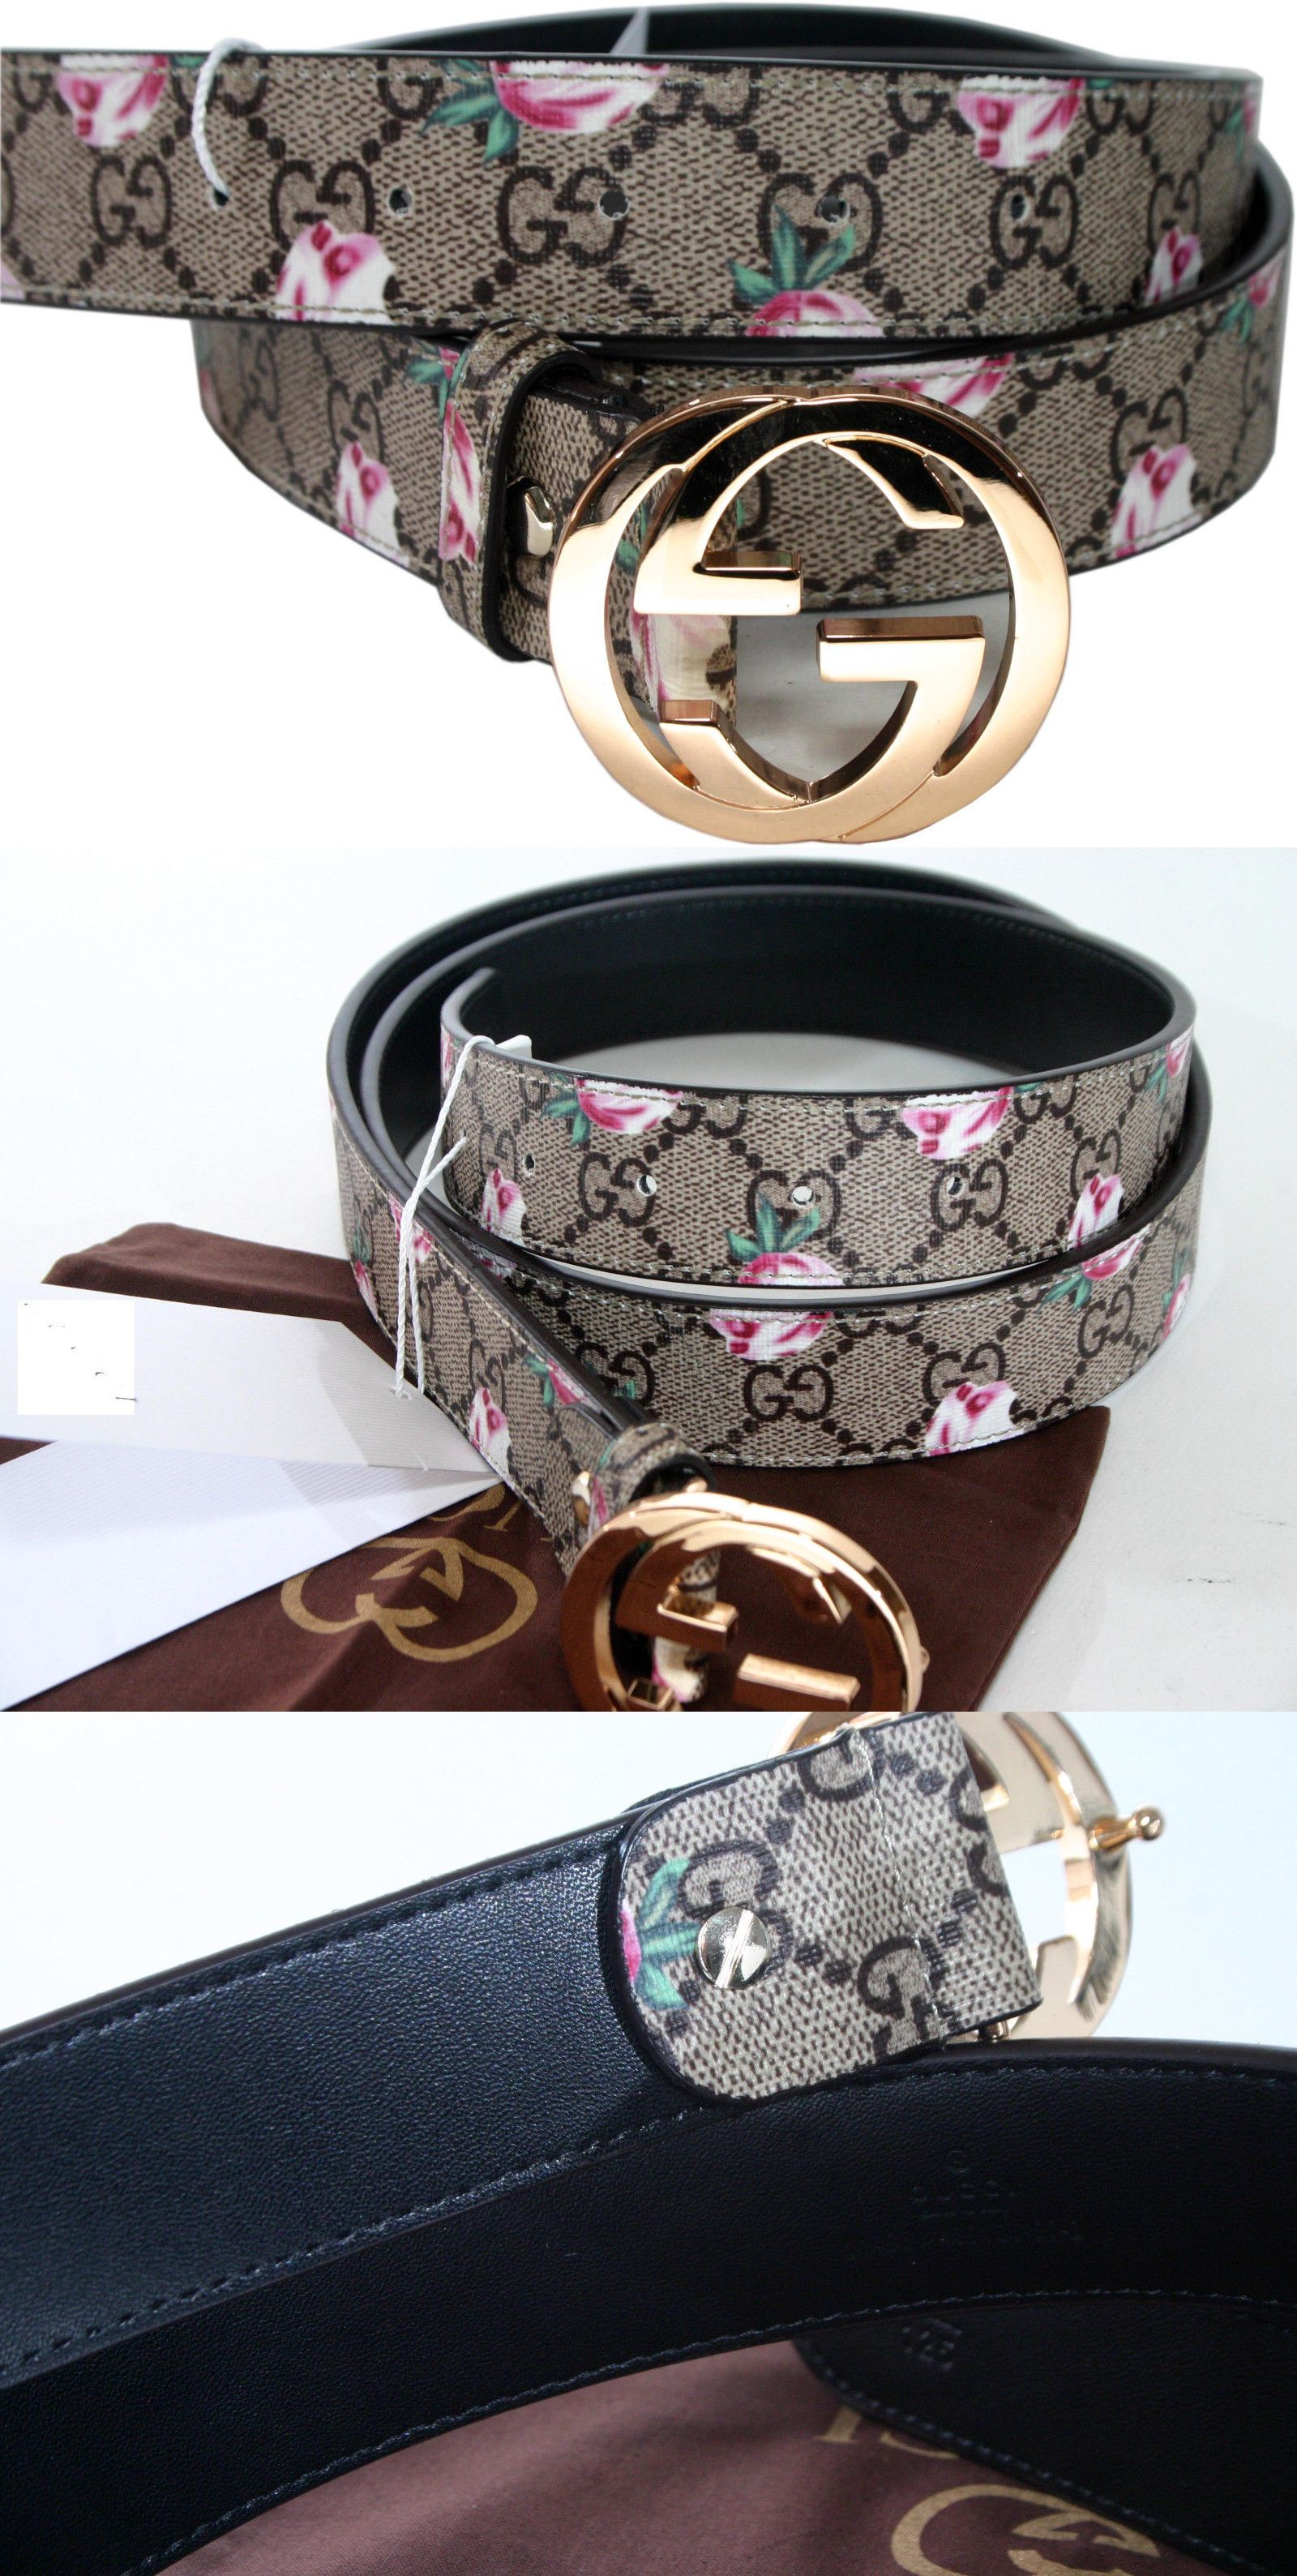 f9bfcc3968c Belts 3003  Nwt Gucci Logo Floral Women Belt All Size . Sizable -  BUY